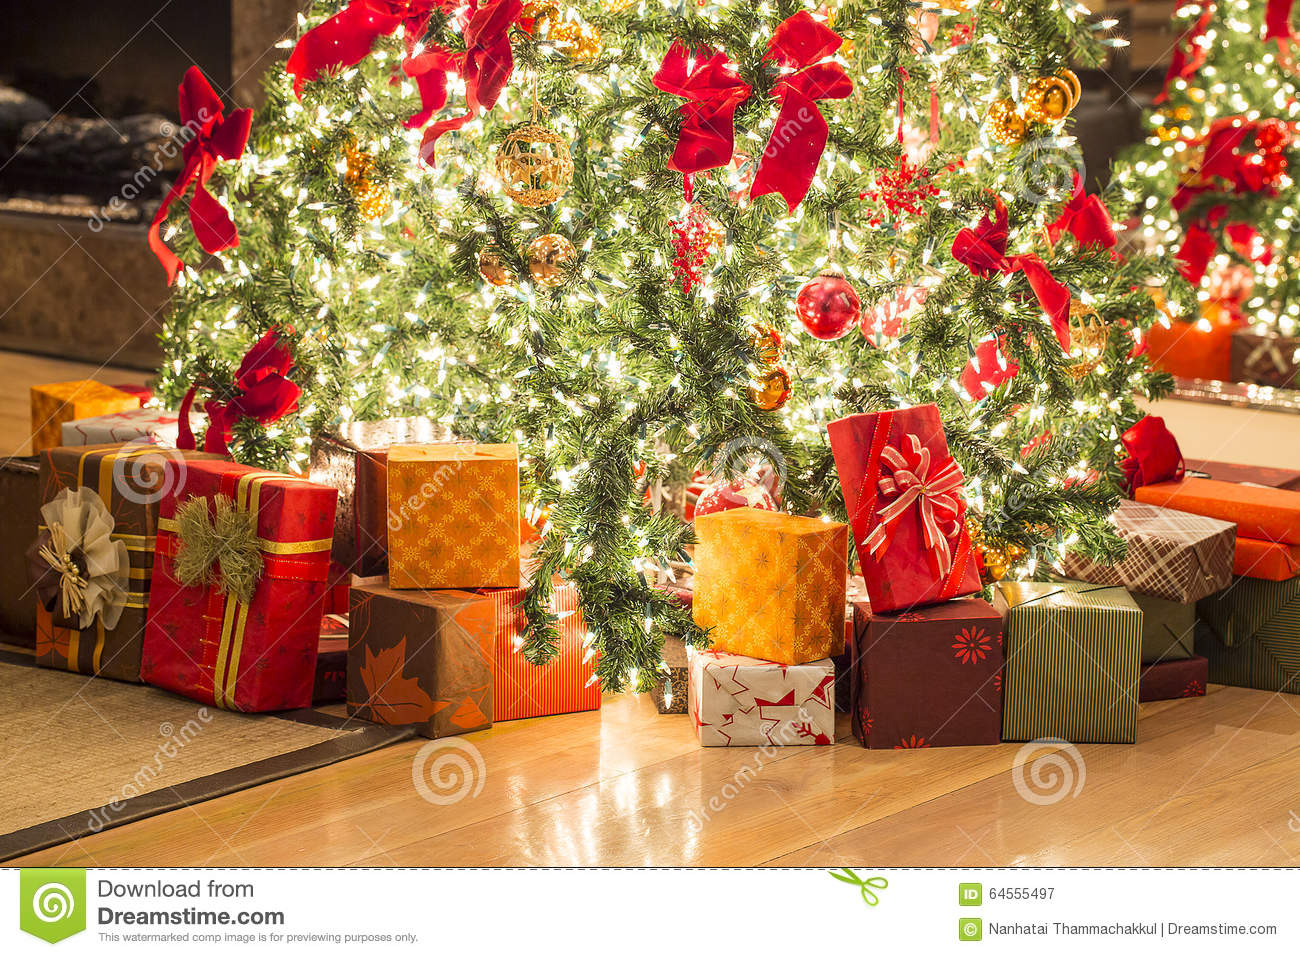 Many Gifts And Beautiful Christmas Tree On Floor Stock Image - Image ...